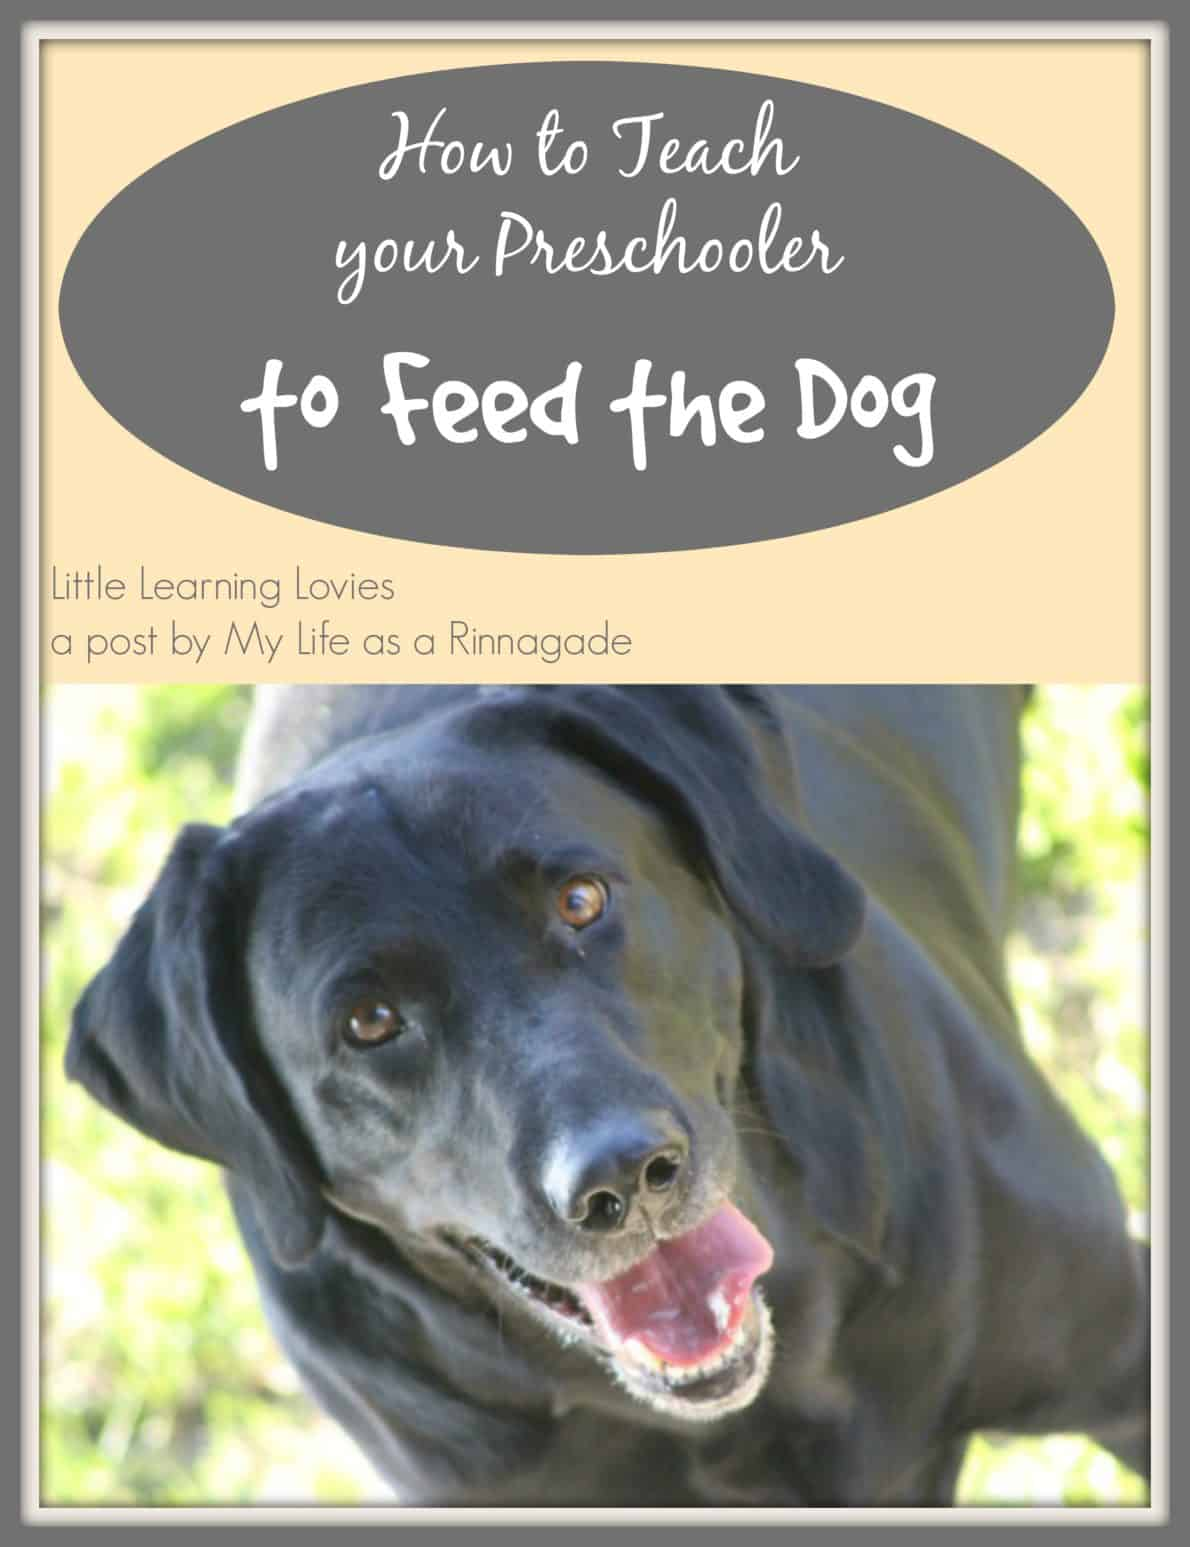 How to Teach Your Preschooler to feed the dog